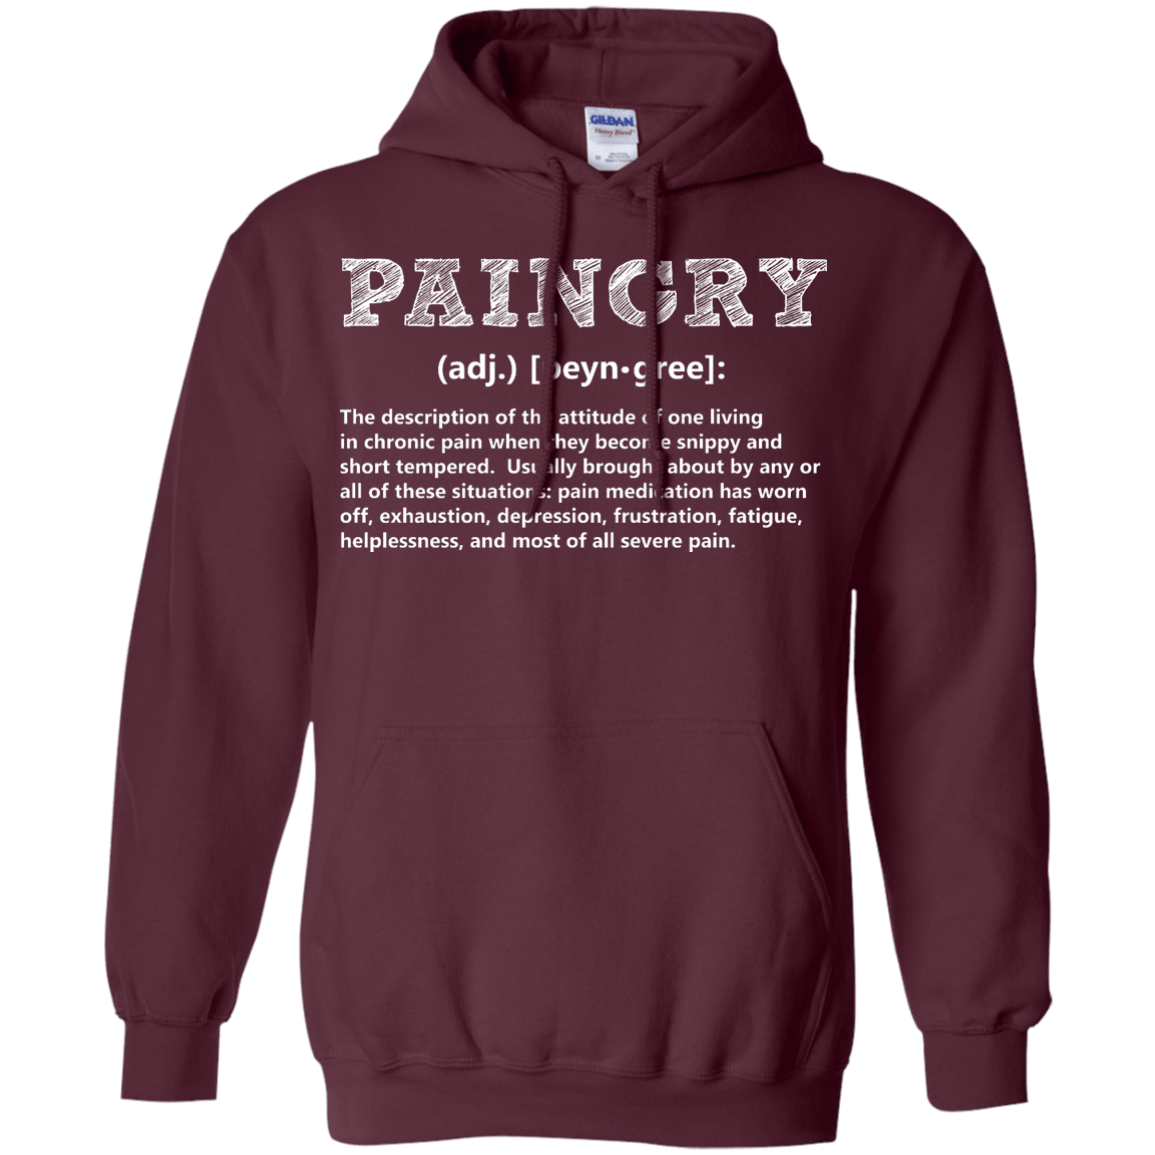 Paingry Definition Pullover Hoodie 8 oz - The Unchargeables